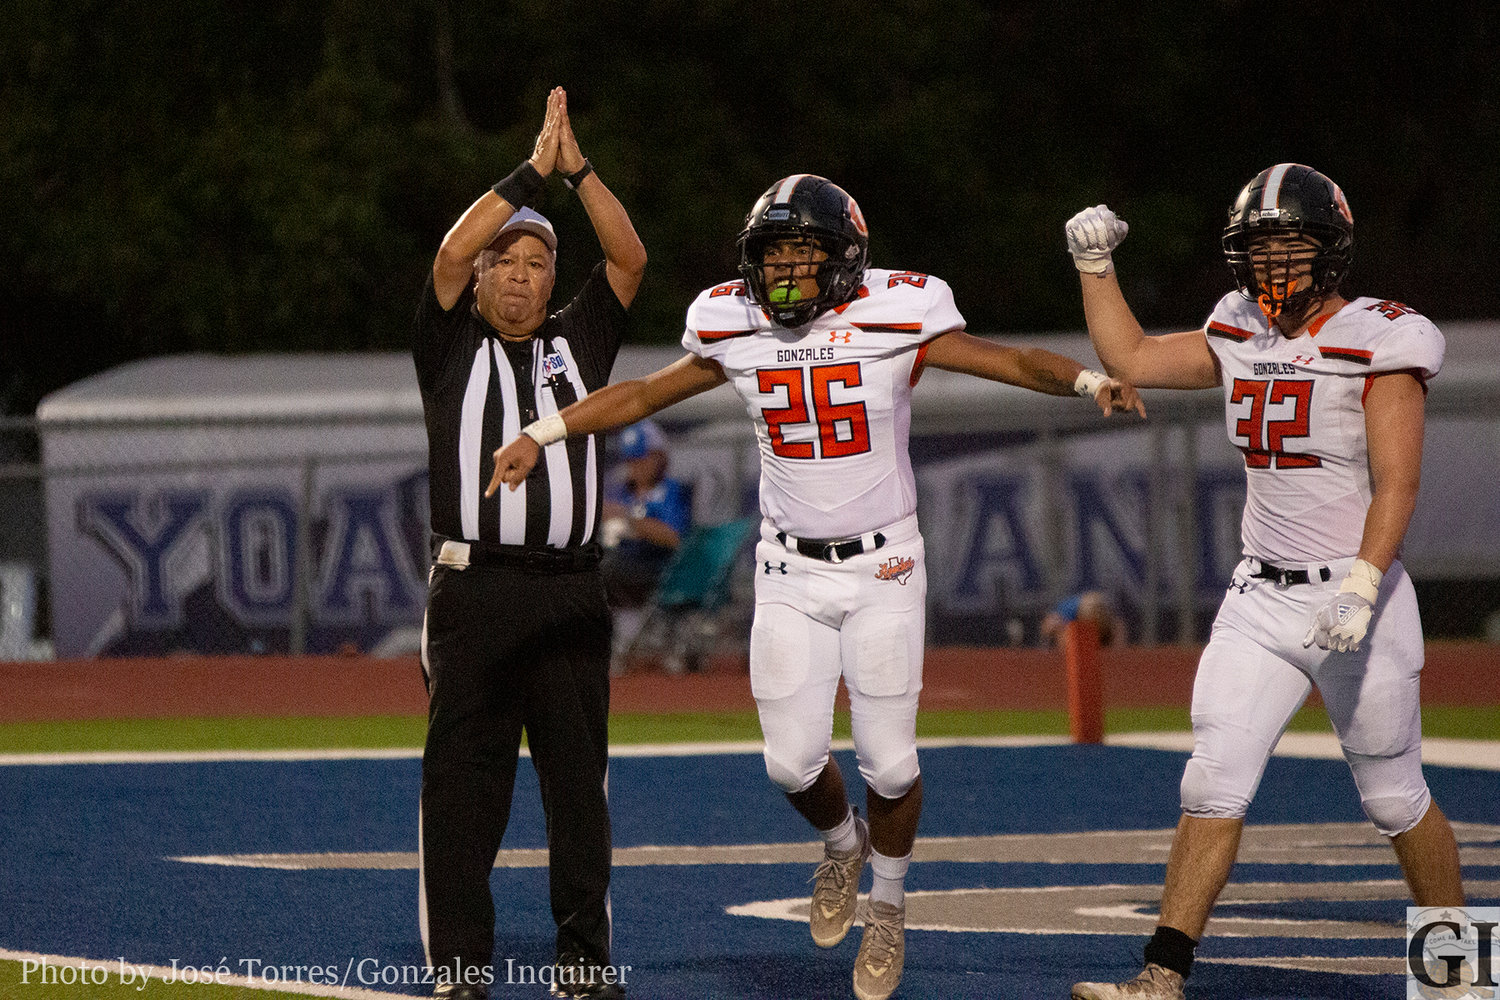 Aaron Guerrero and Diego Diaz de Leon celebrate a safety in the first half of Gonzales' 27-25 win over Yoakum.